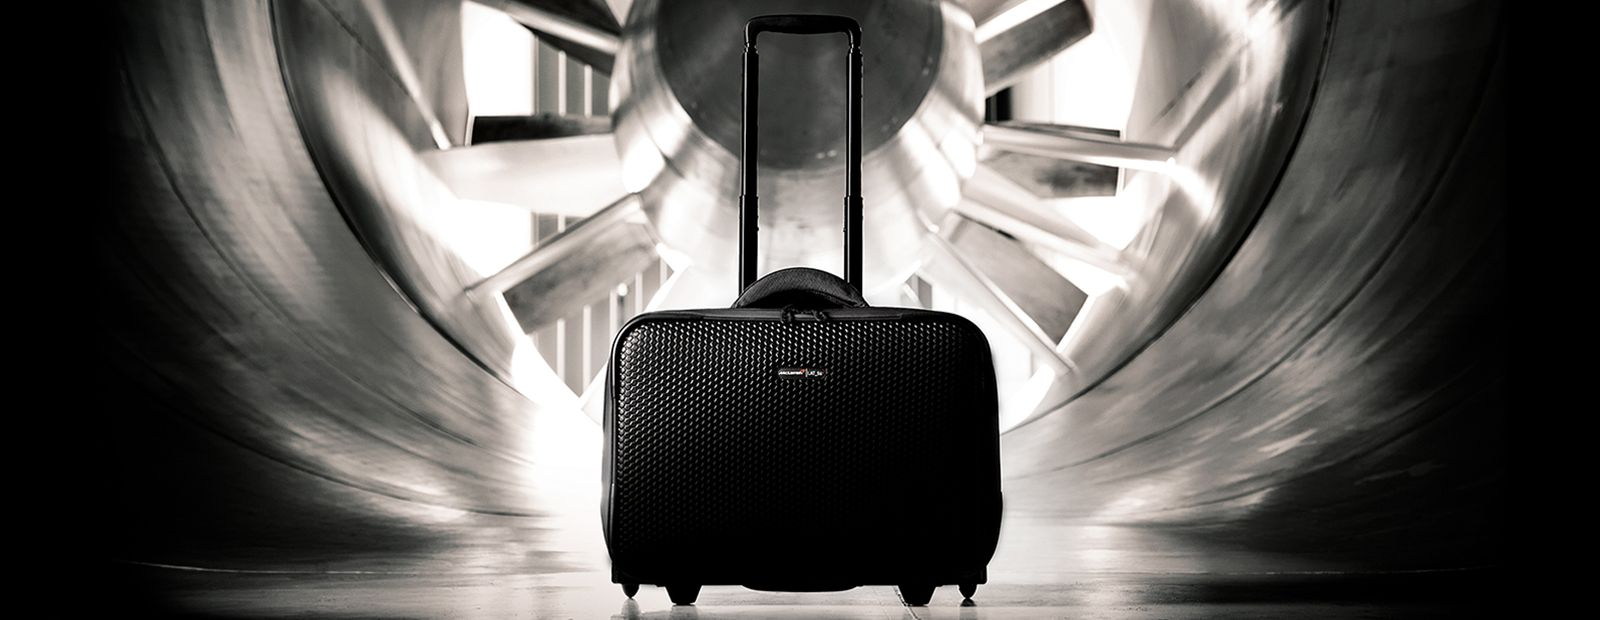 McLaren announces multi-faceted partnership with premium luggage brand LAT_56